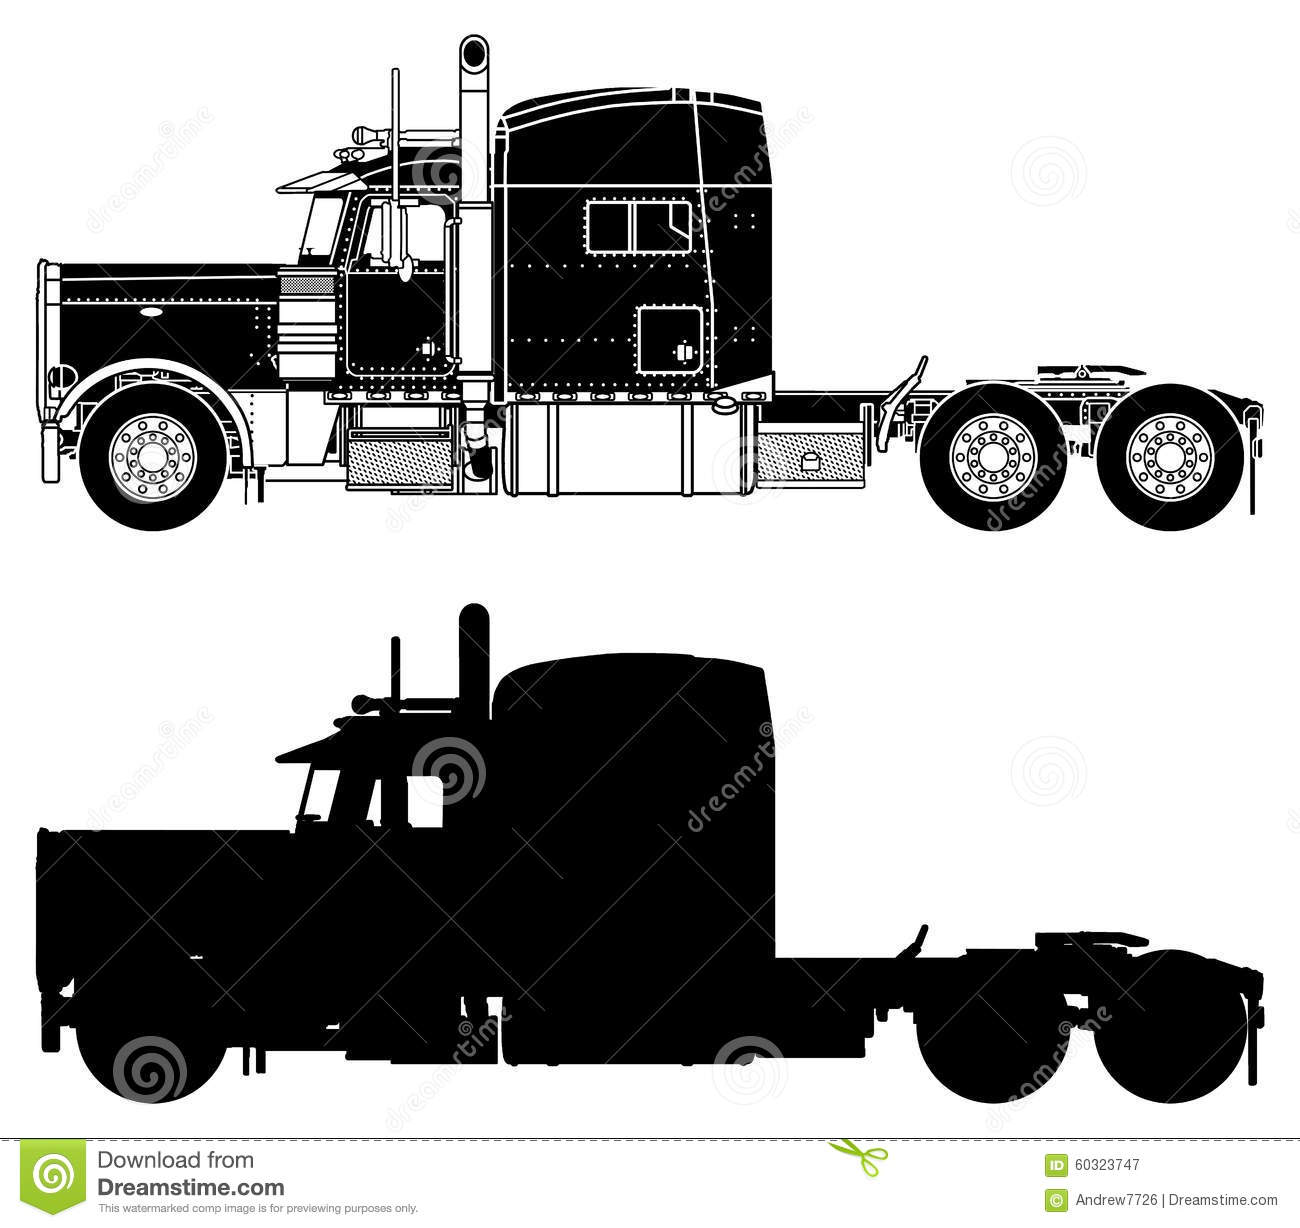 022601e26c Silhouette Truck Stock Images - Download 1